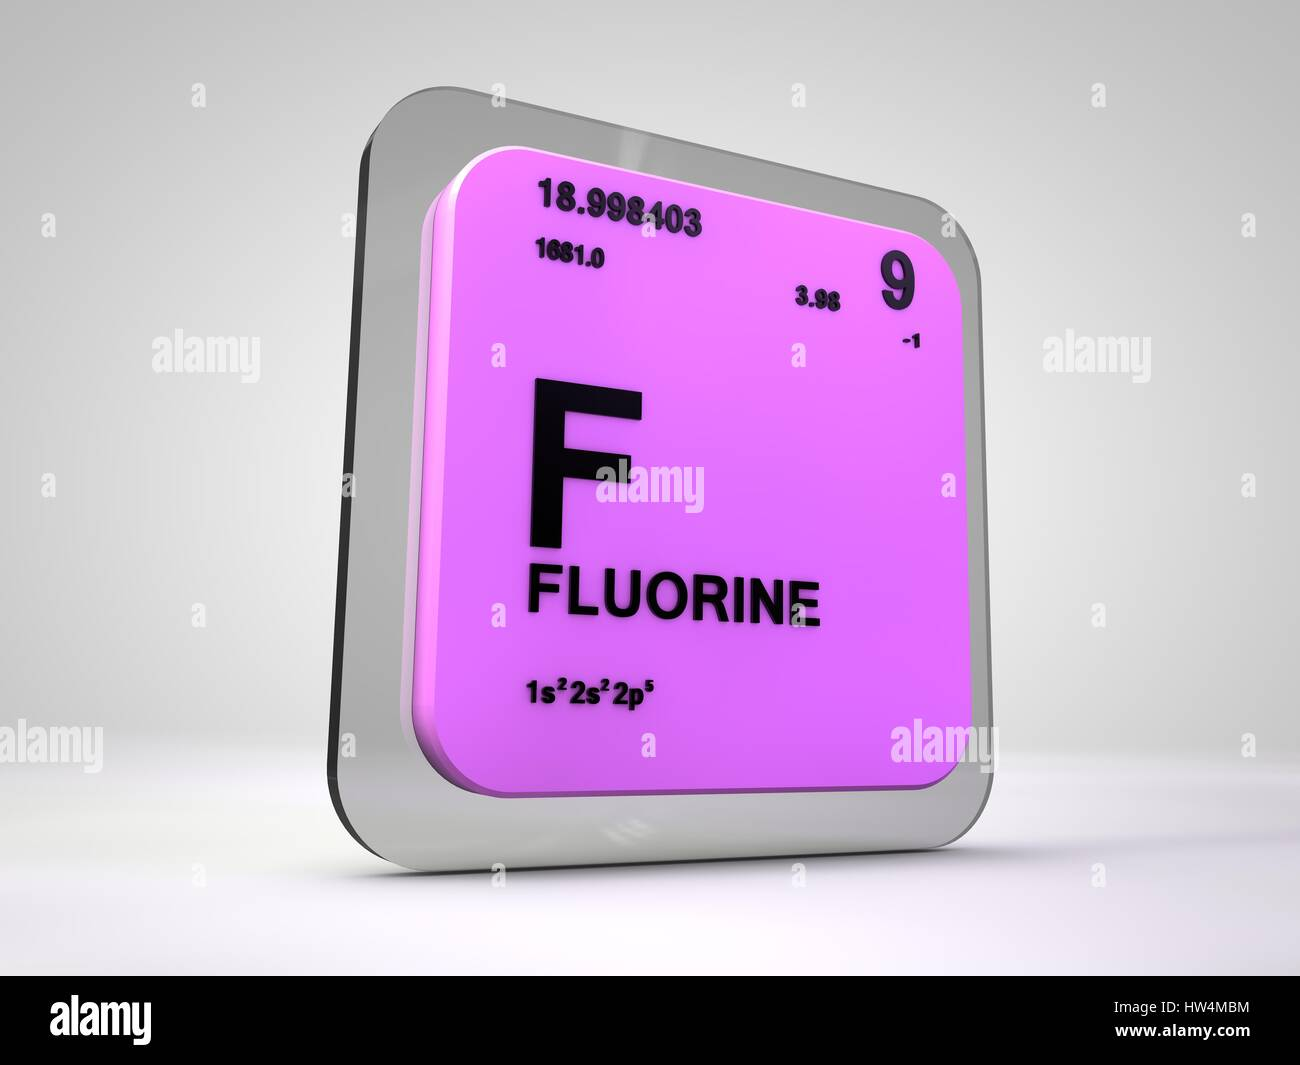 Fluorine f chemical element periodic table 3d render stock fluorine f chemical element periodic table 3d render gamestrikefo Choice Image